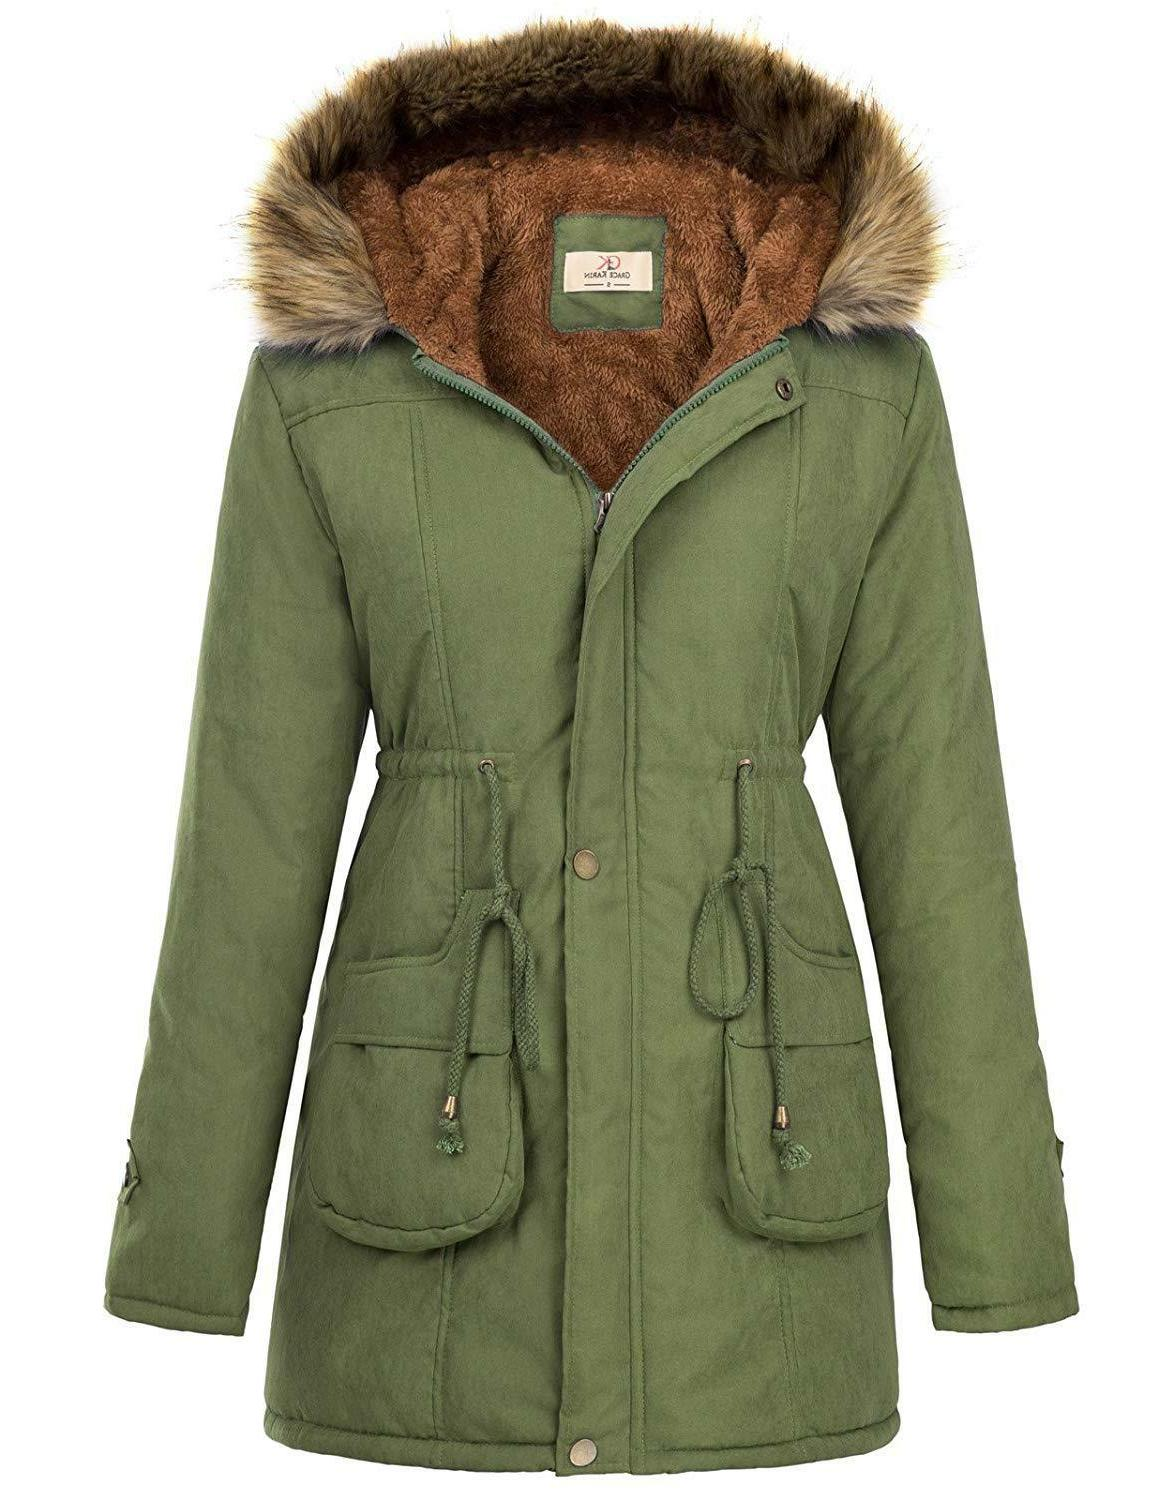 GRACE KARIN Hooded Warm Winter Thicken Lined Parkas